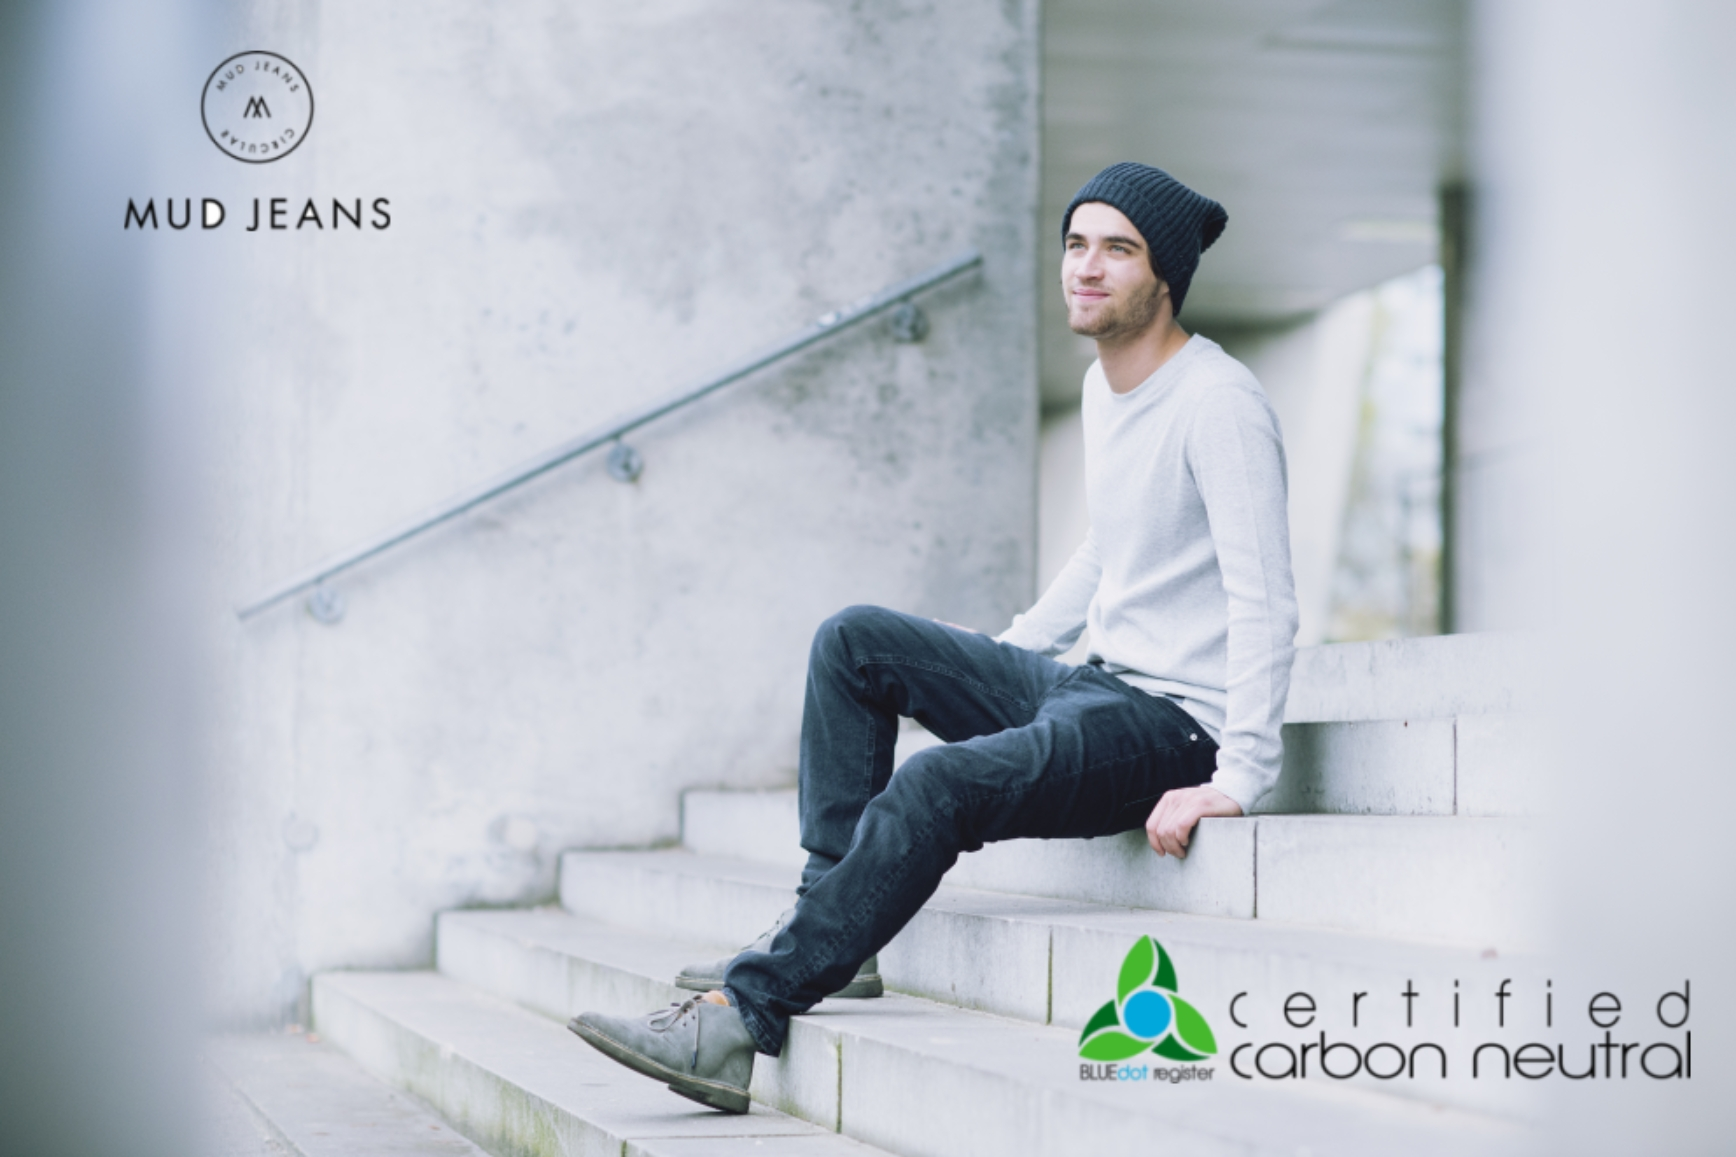 Guy on steps with logos.jpg